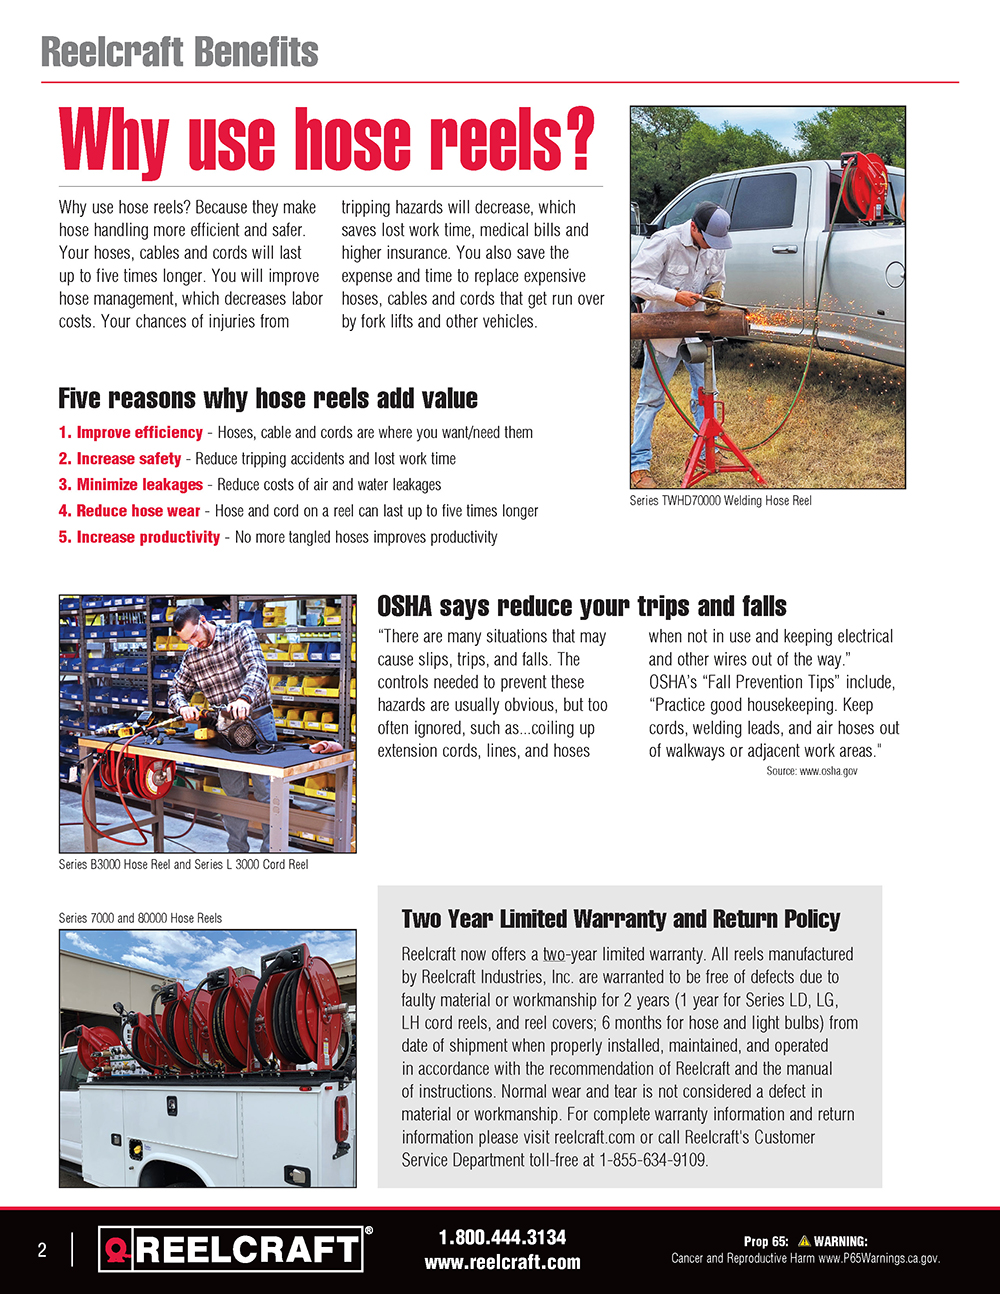 Reelcraft Catalog Page 2 - Why Use Reels